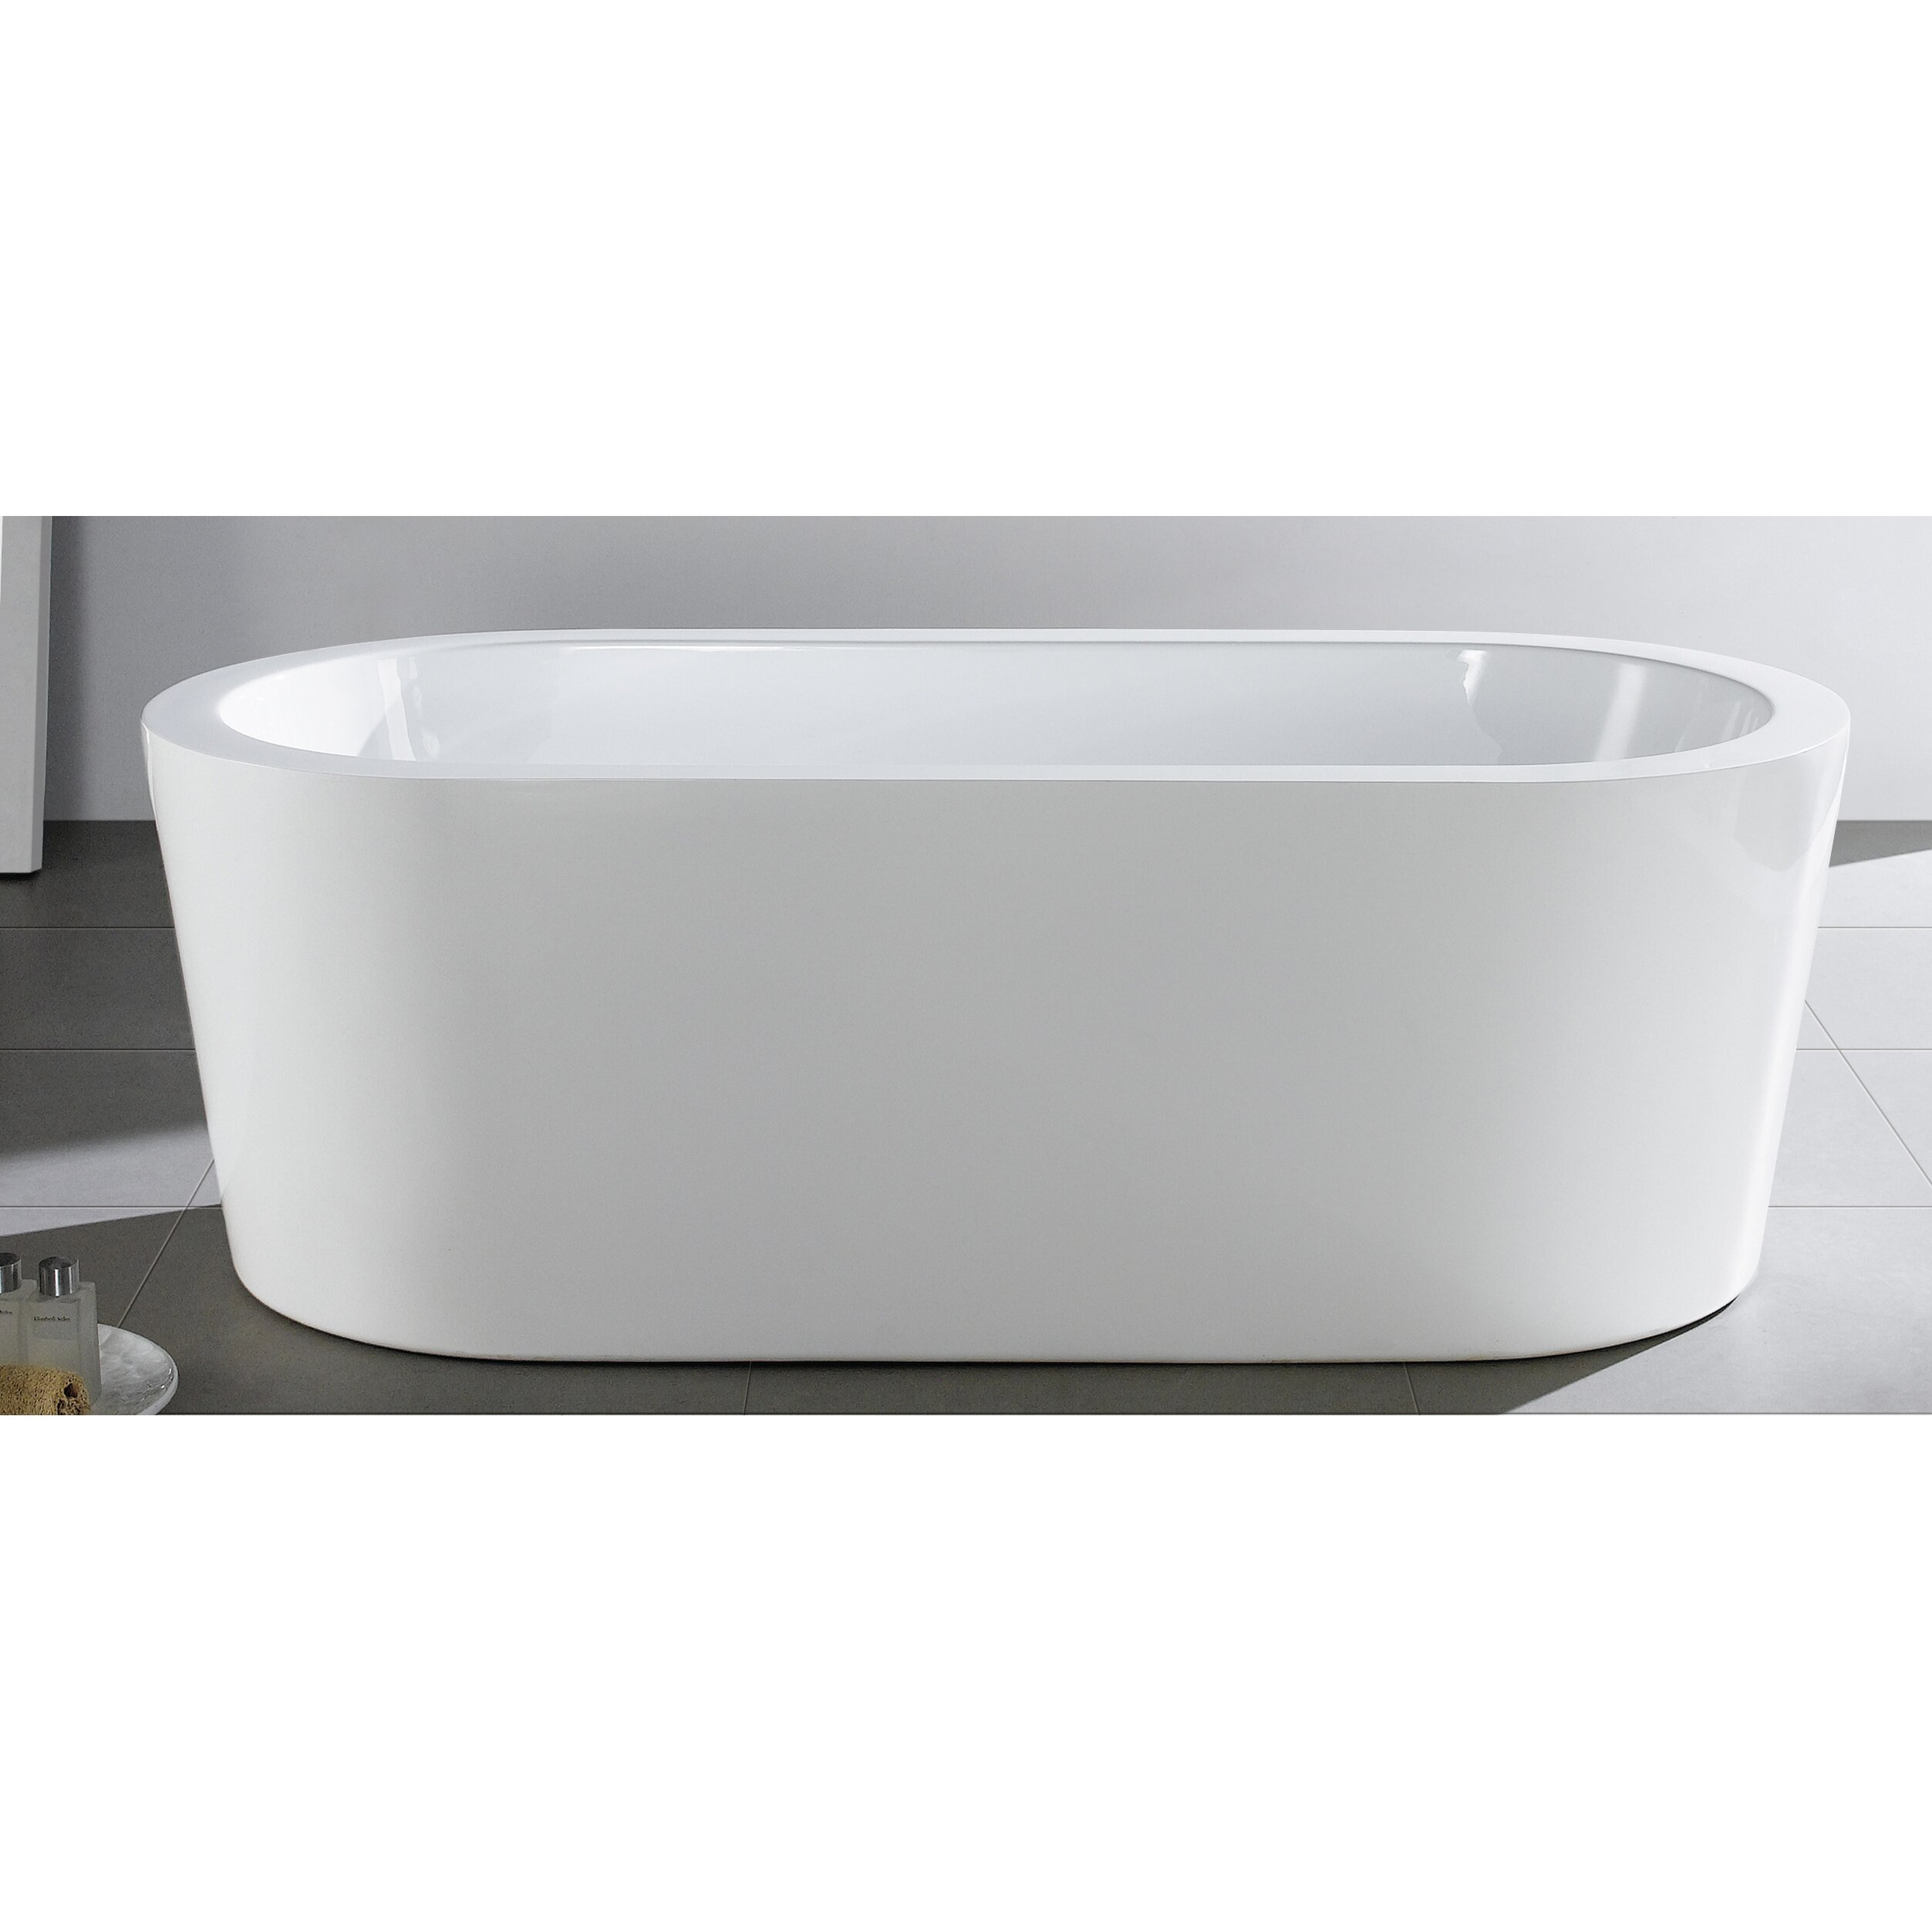 58 X 29 Bathtub 28 Images Eviva Ramo 58 Quot X 29 Quot Bathtub Wayfair Abana 58 Quot X 29